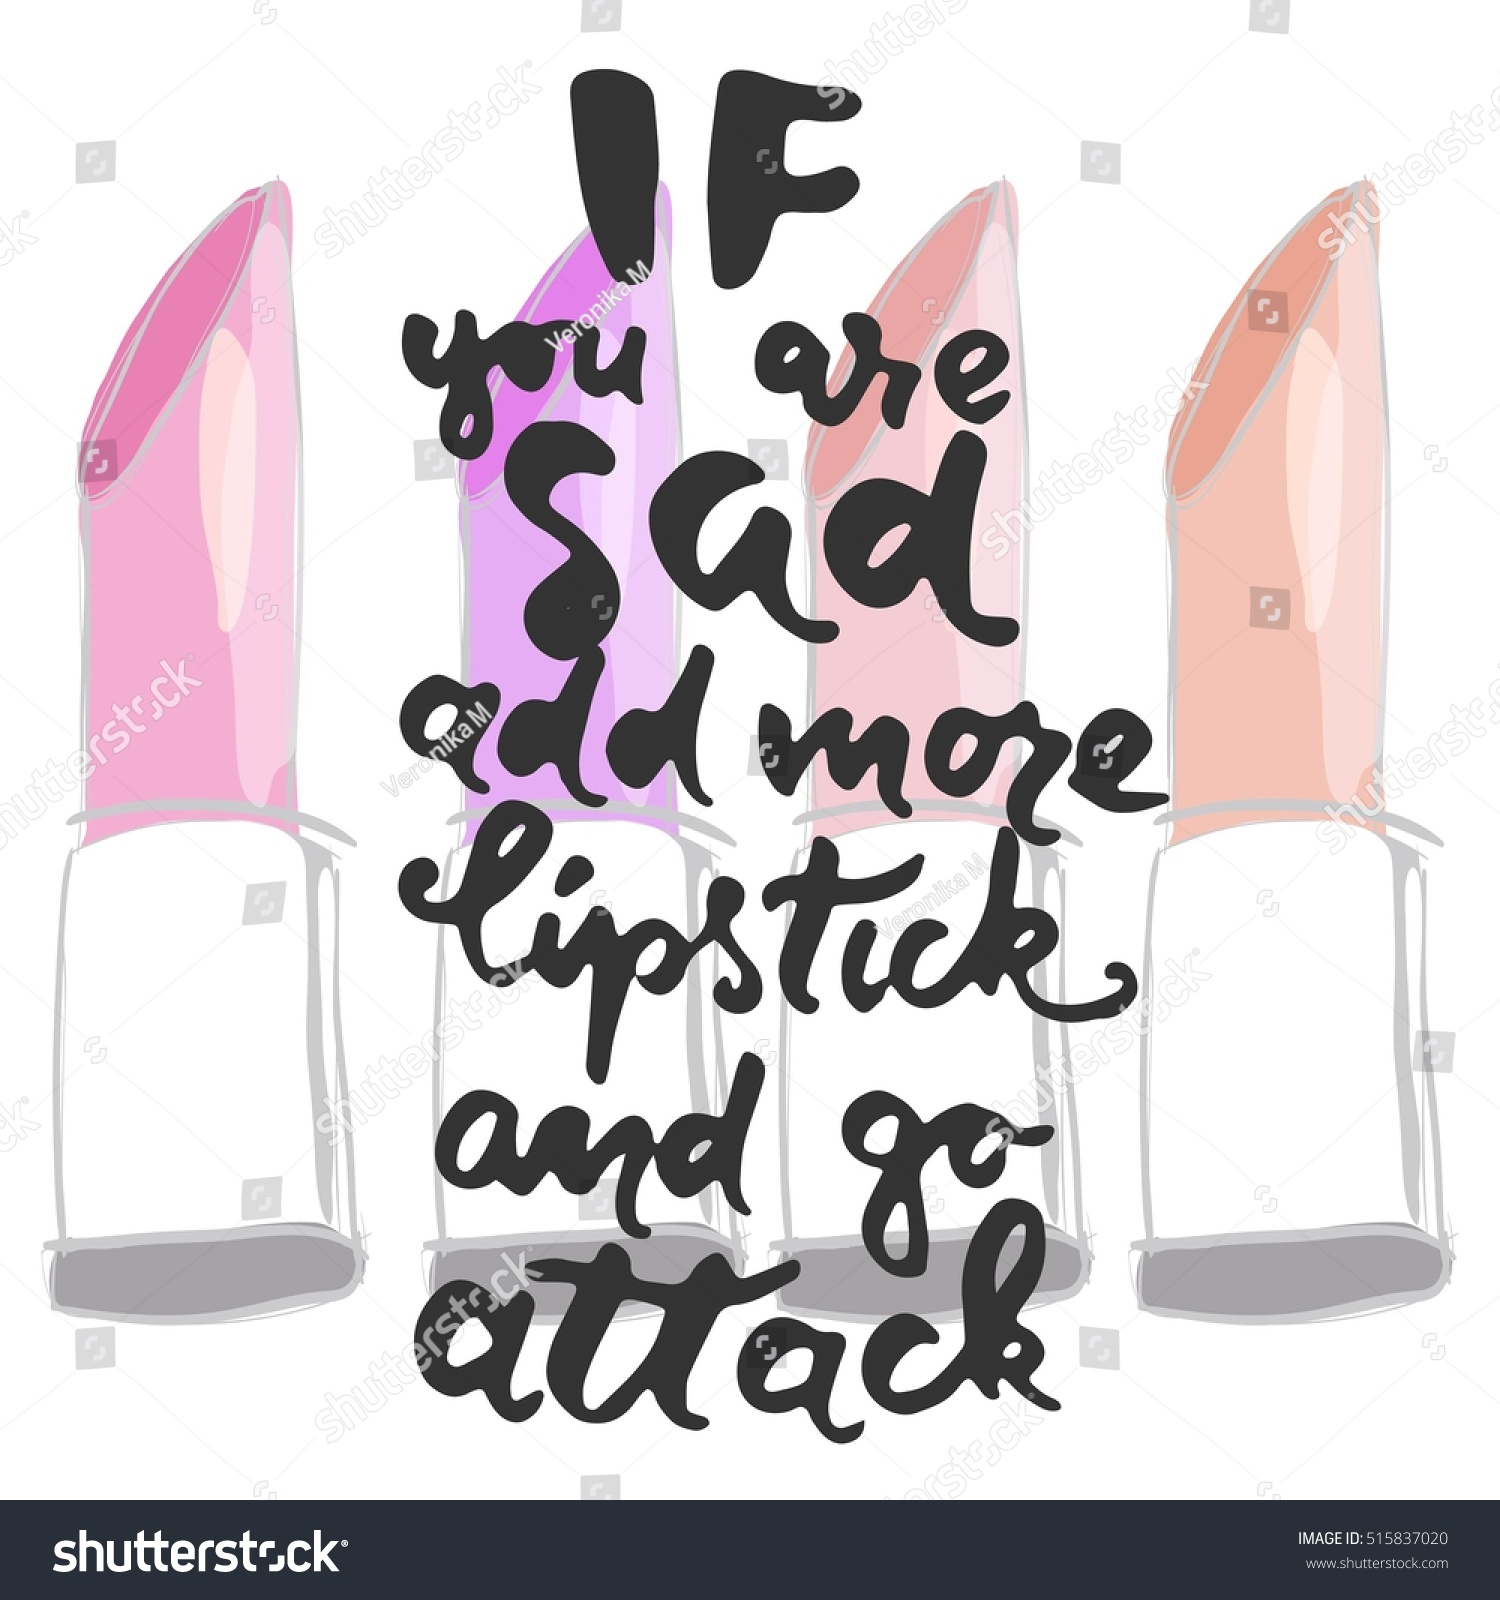 Lipstick Quotes You Sad Add More Lipstick Attack Stock Vector 515837020  Shutterstock